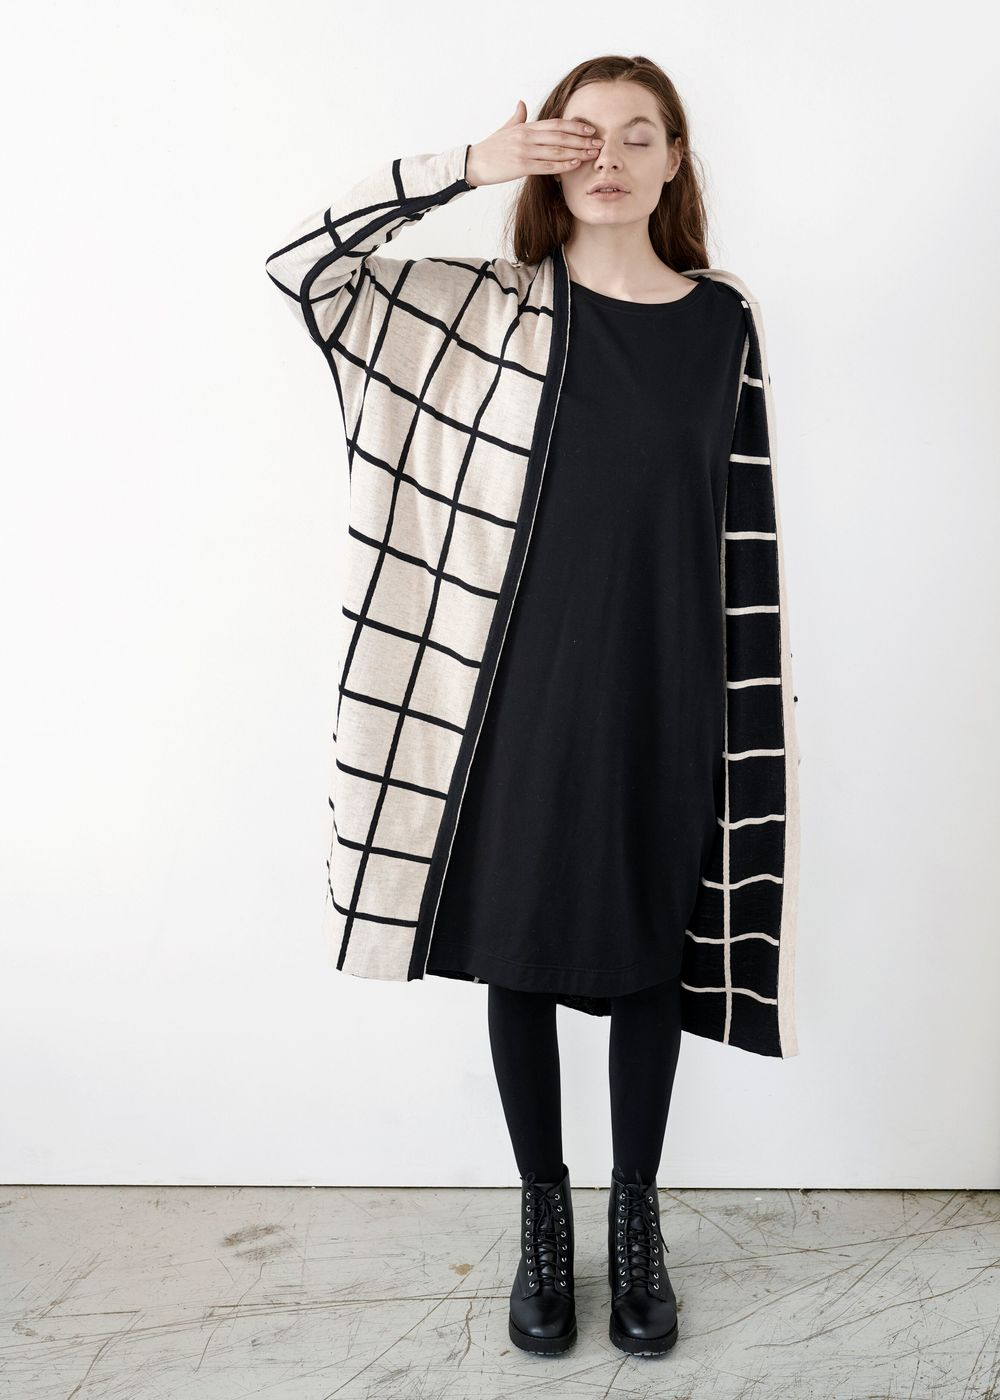 PAPU KNIT LONG CARDIGAN, GIANT GRID BLK/CREAM